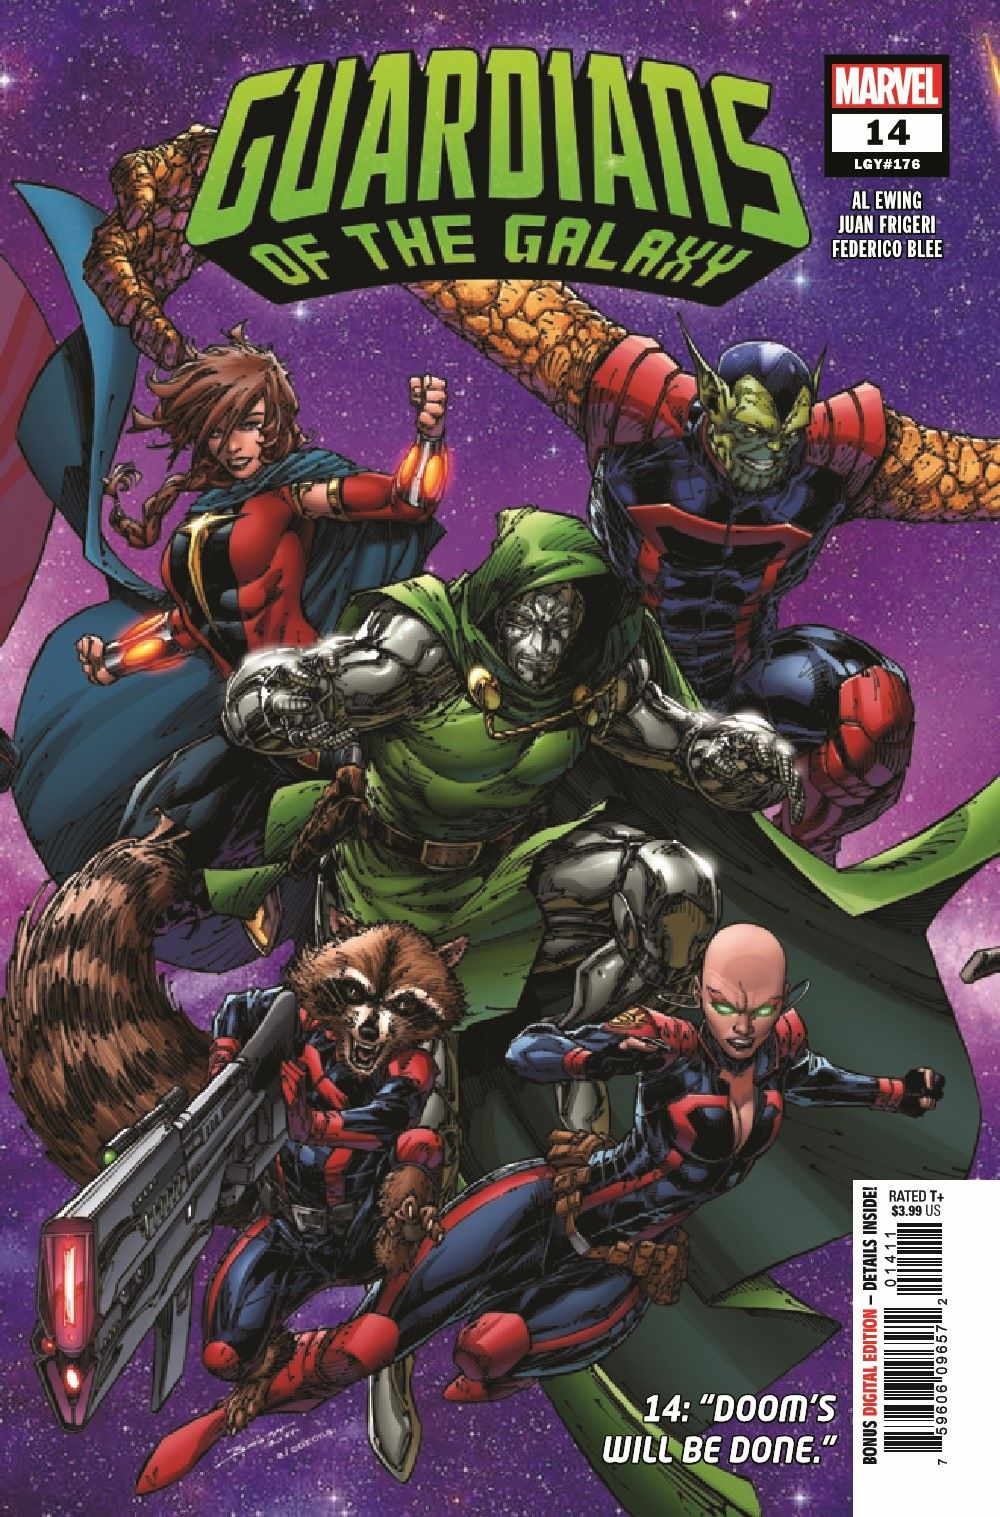 GARGAL2020014_Preview-1 ComicList Previews: GUARDIANS OF THE GALAXY #14